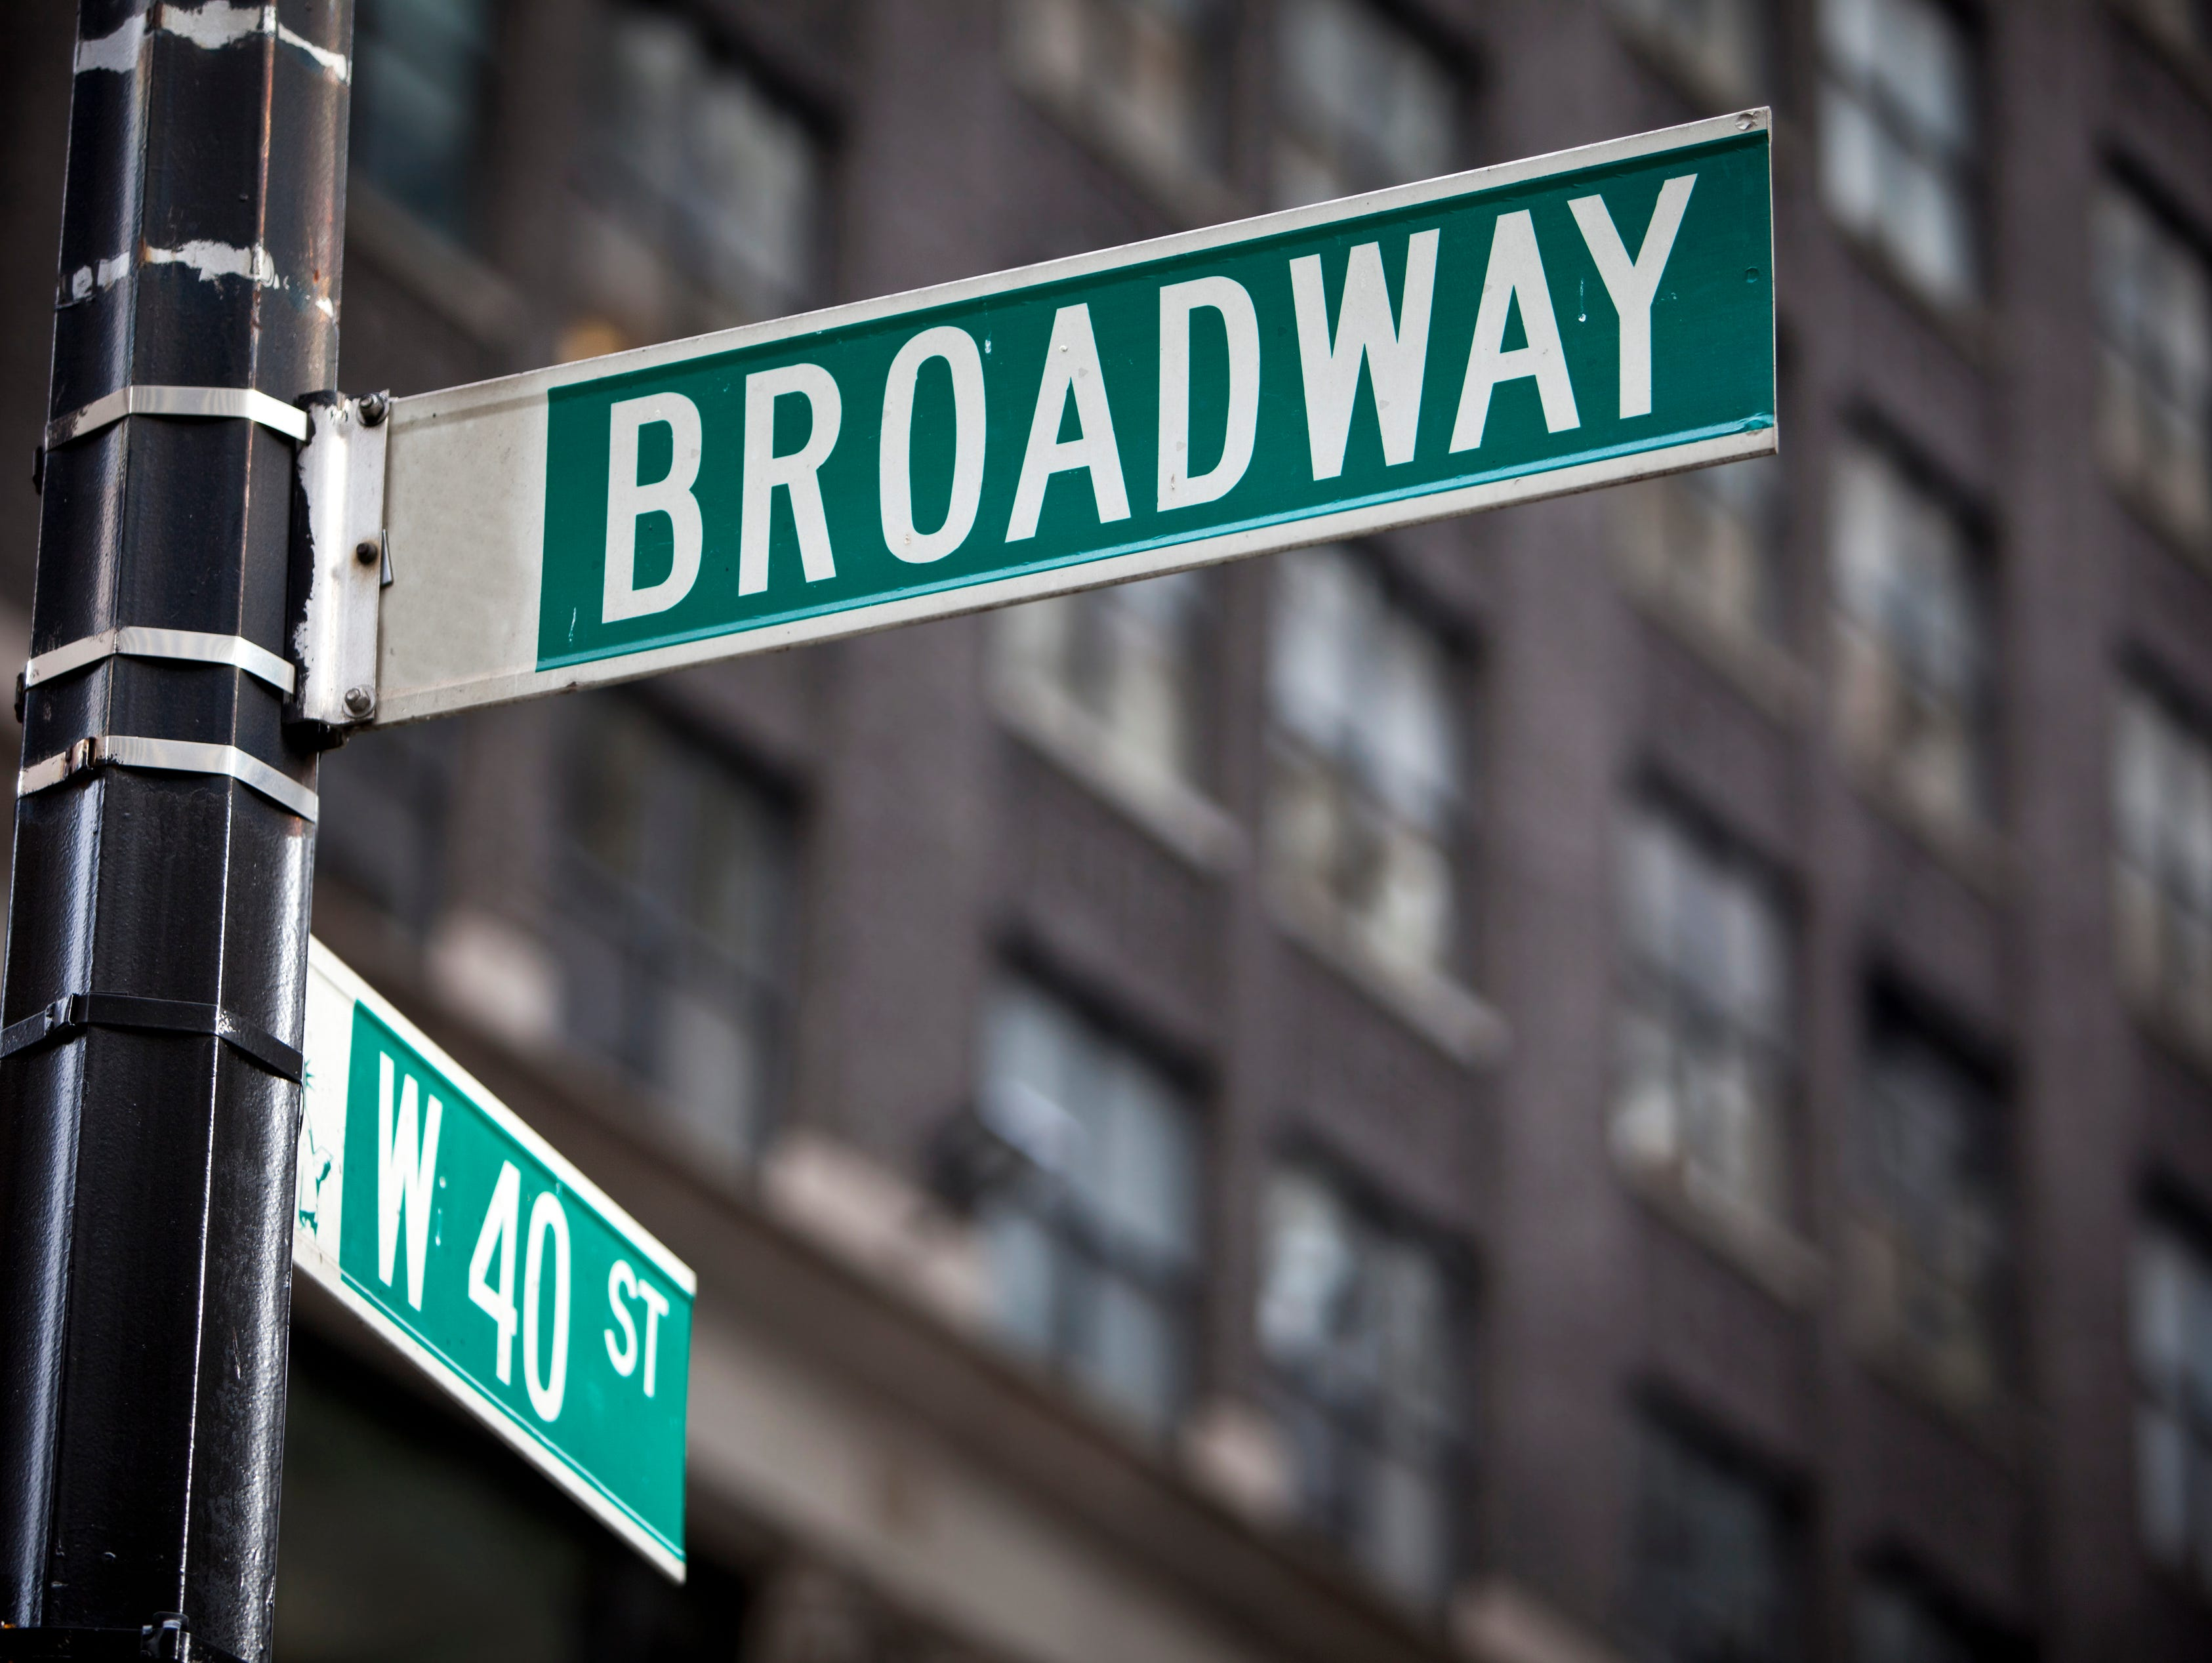 """Insiders get deals on Broadway shows, from """"Book of Mormon"""" to """"Kinky Boots,"""" """"Matilda"""" and more."""